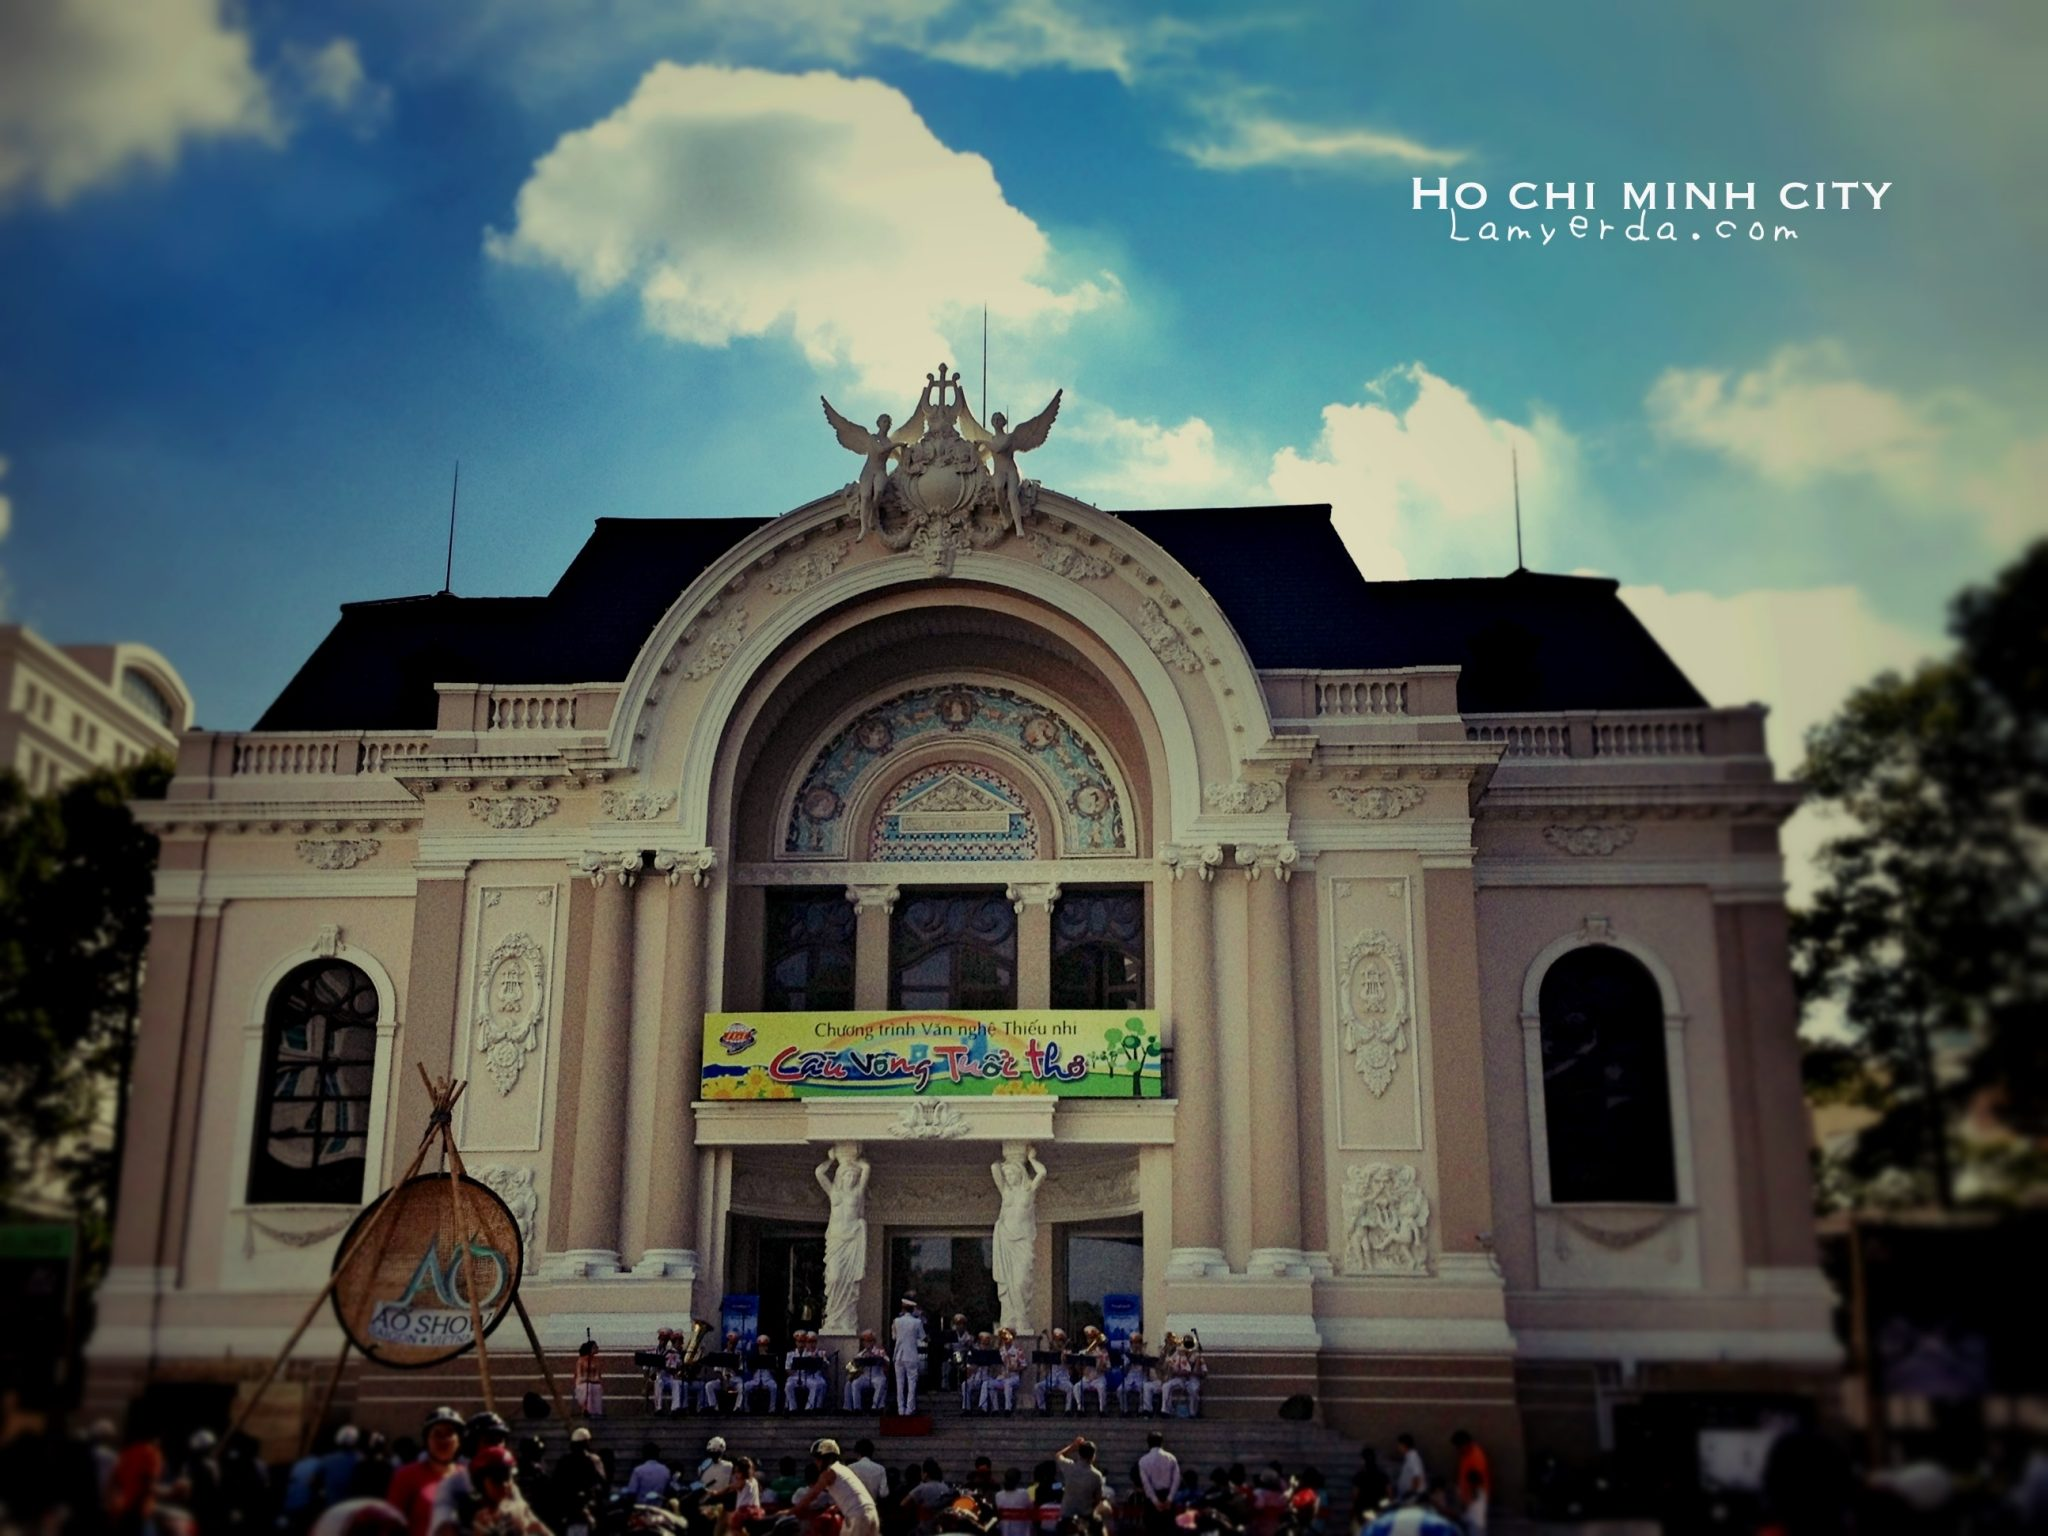 Saigon: The Opera House